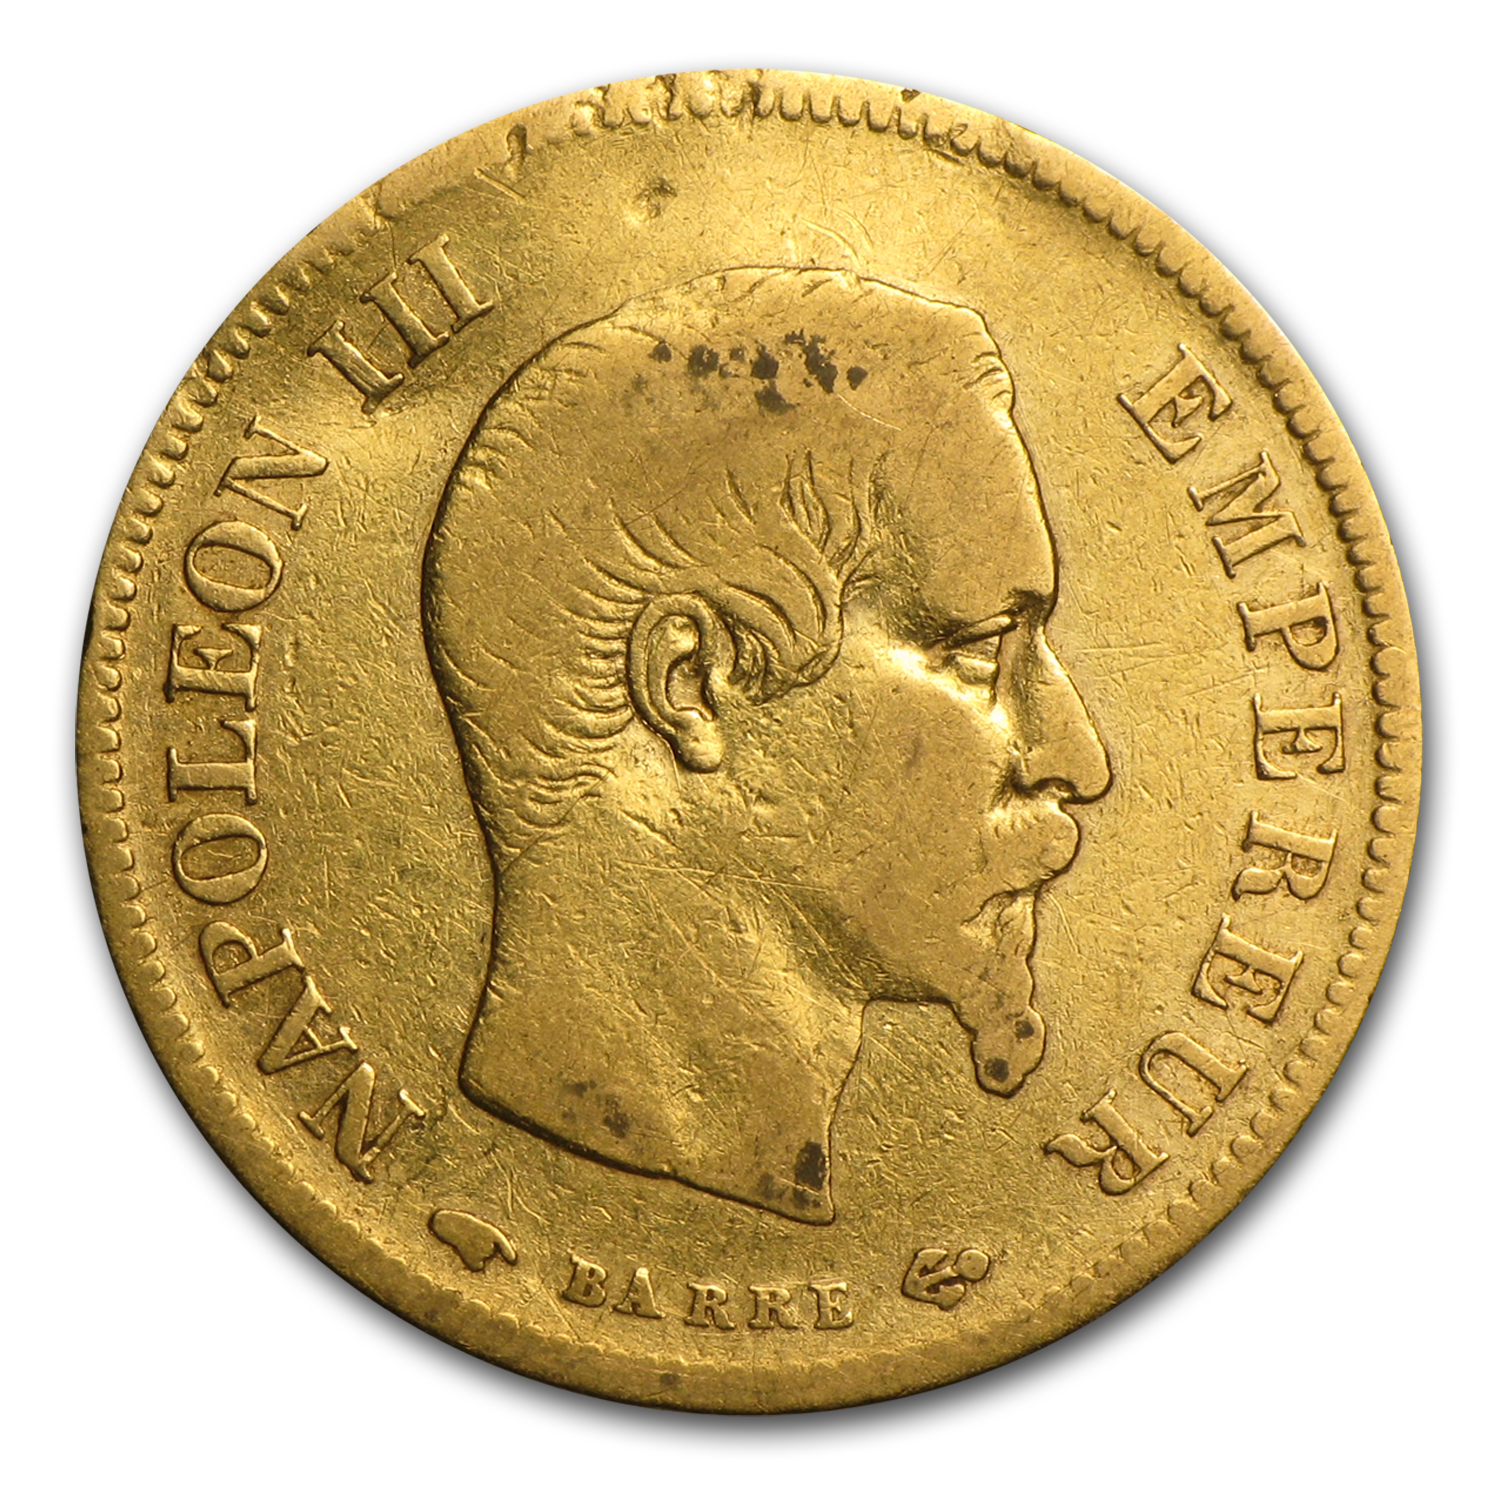 France Gold 10 Francs (Napoleon III) (Cleaned/Damaged)